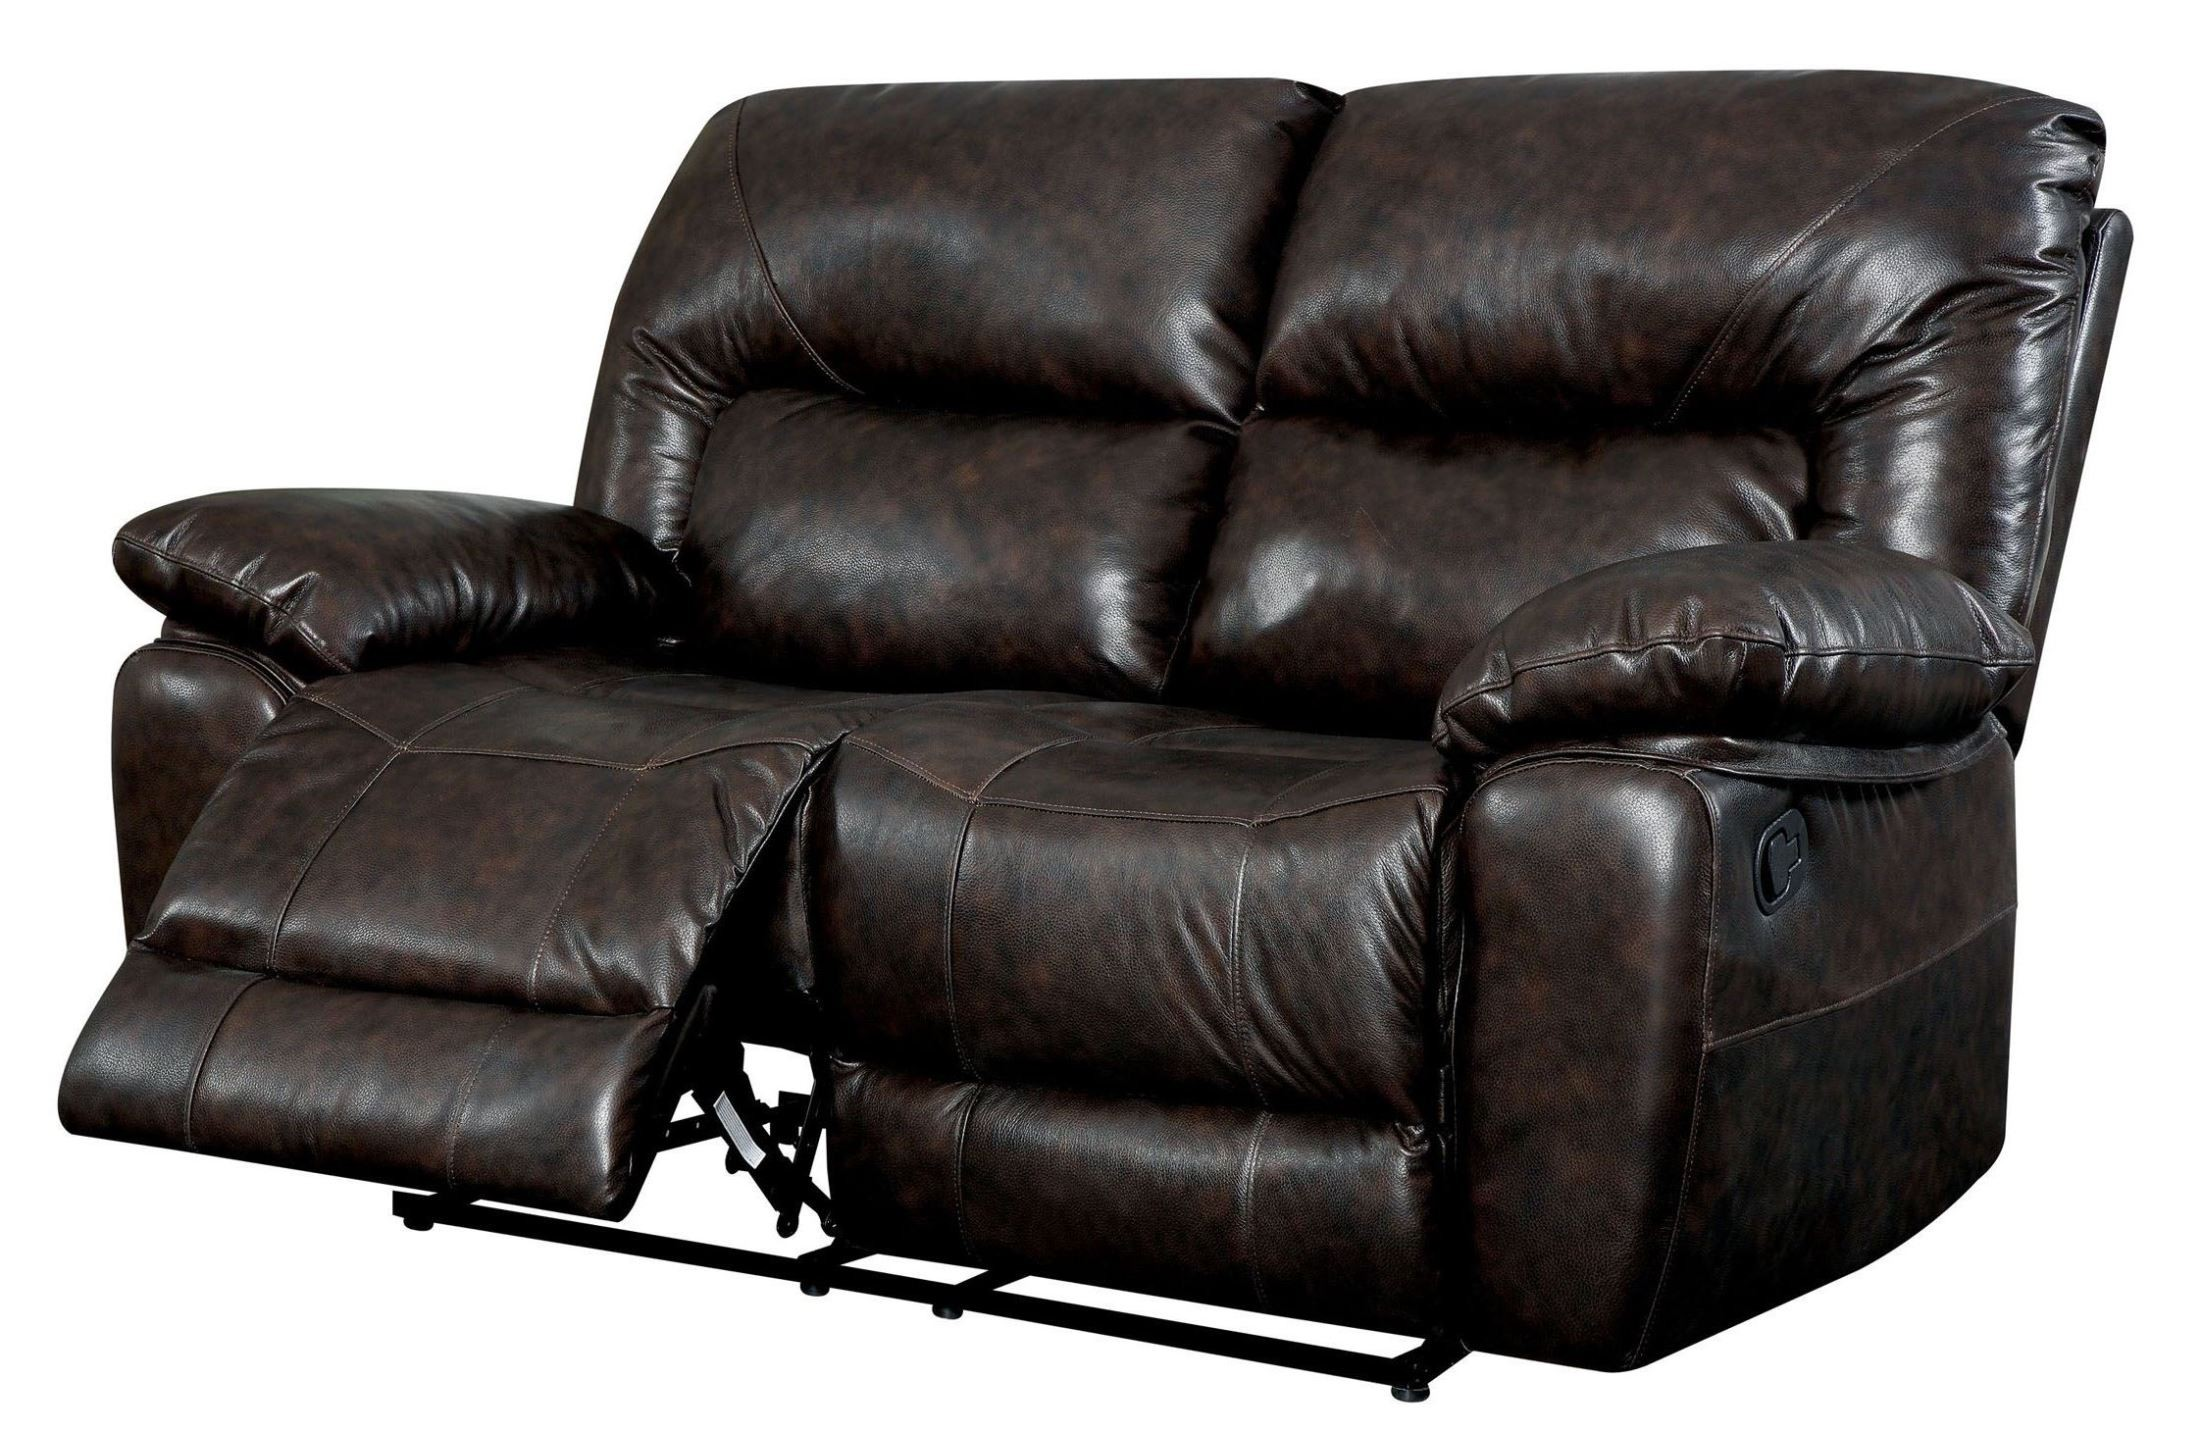 Stallion Top Grain Leather Match Reclining Loveseat From Furniture Of America Cm6319 Lv